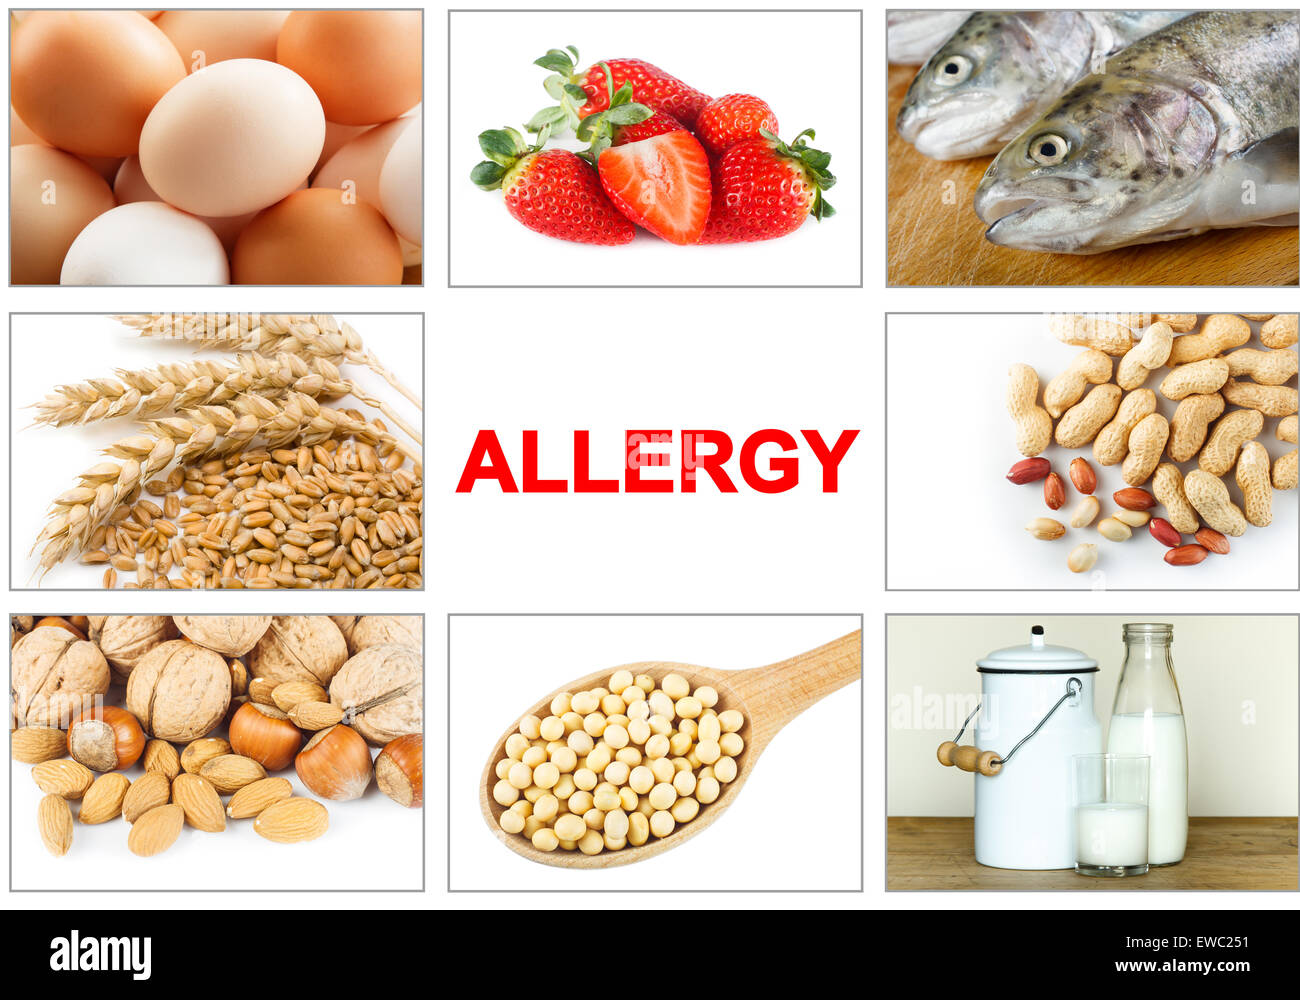 Allergy food concept. Food allergens as eggs, milk, fruit, tree nuts, peanut, soy, wheat and fish. Text 'ALLERGY' - Stock Image